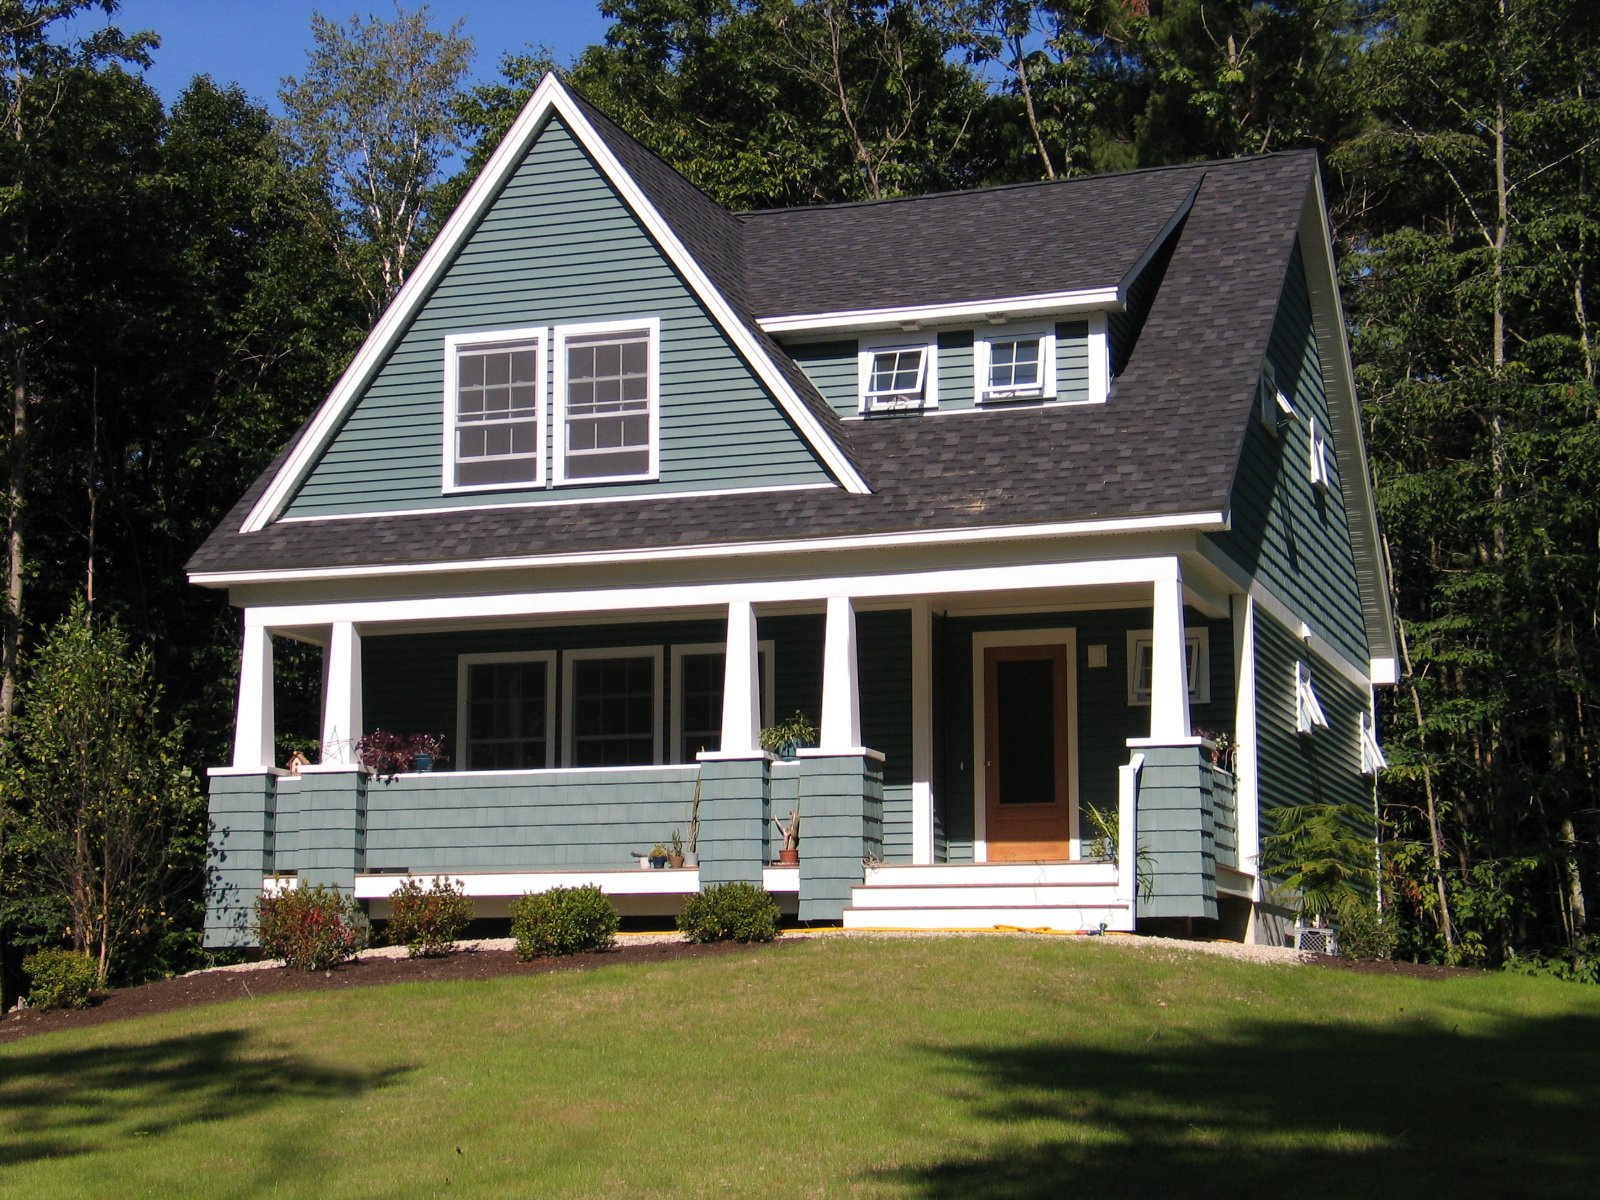 Is a craftsman style home right for you chinburg properties for Craftsman style architecture